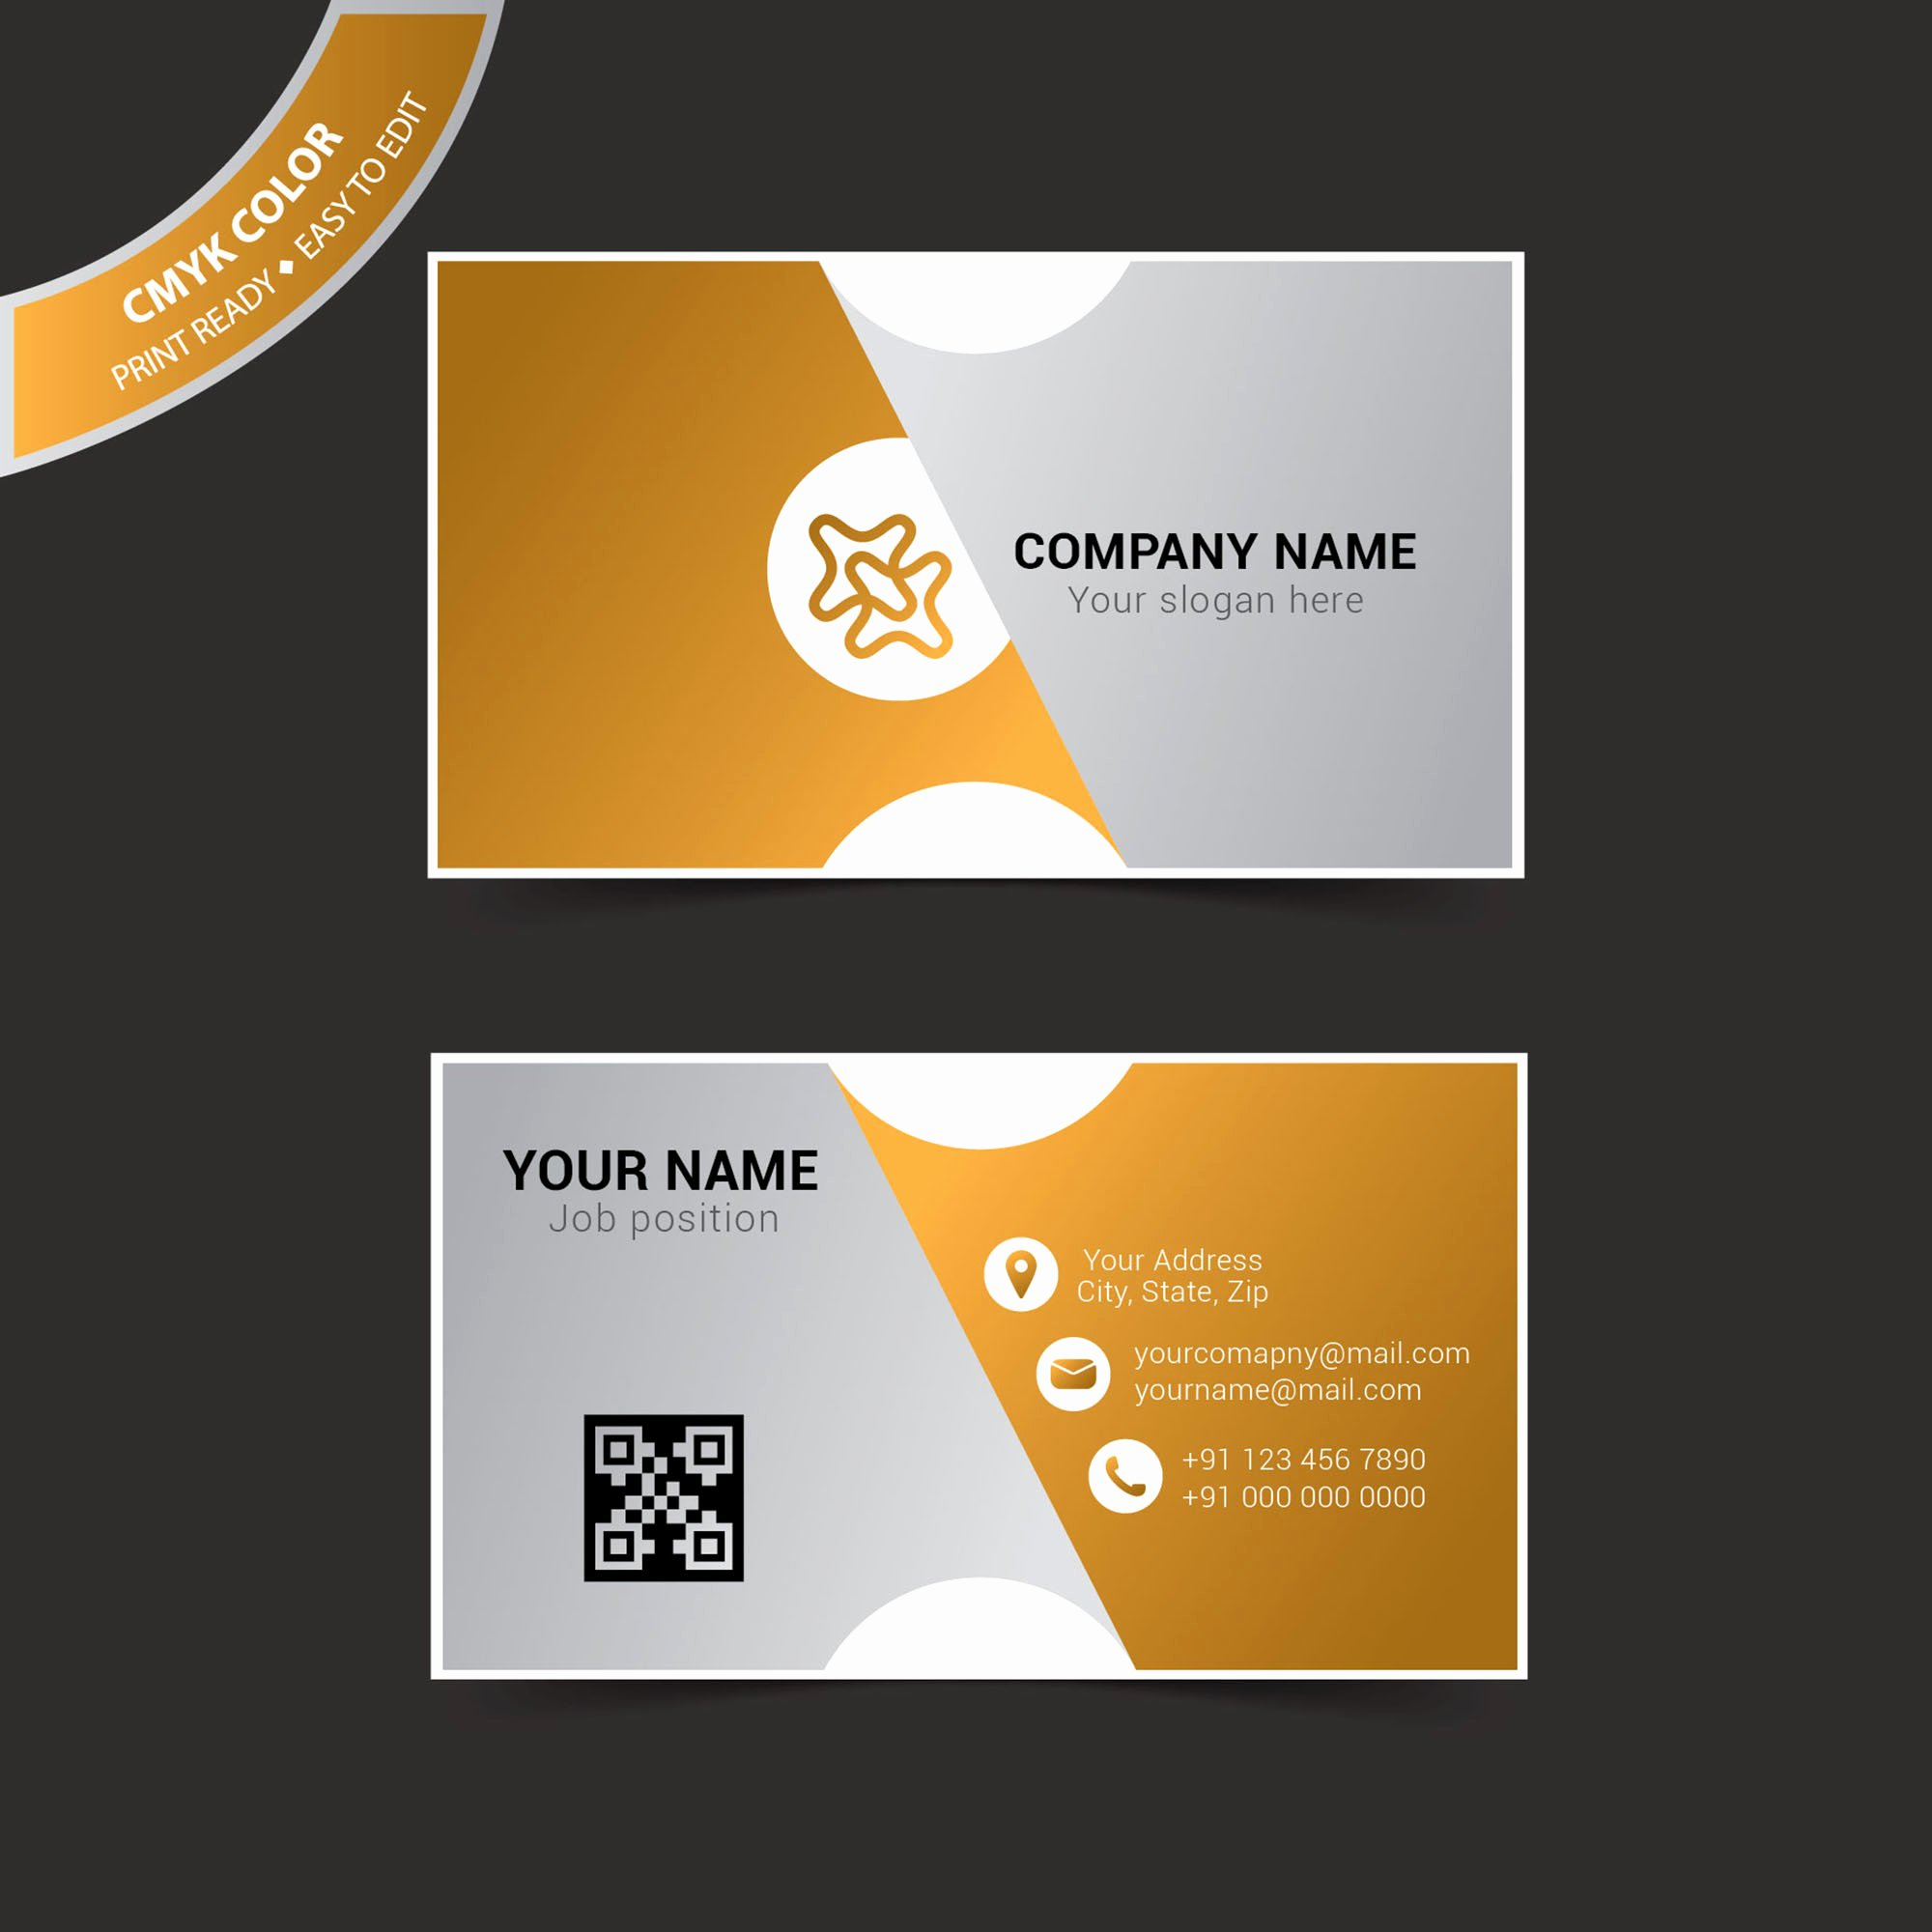 Business Card Template Illustrator Free Vector Wisxi